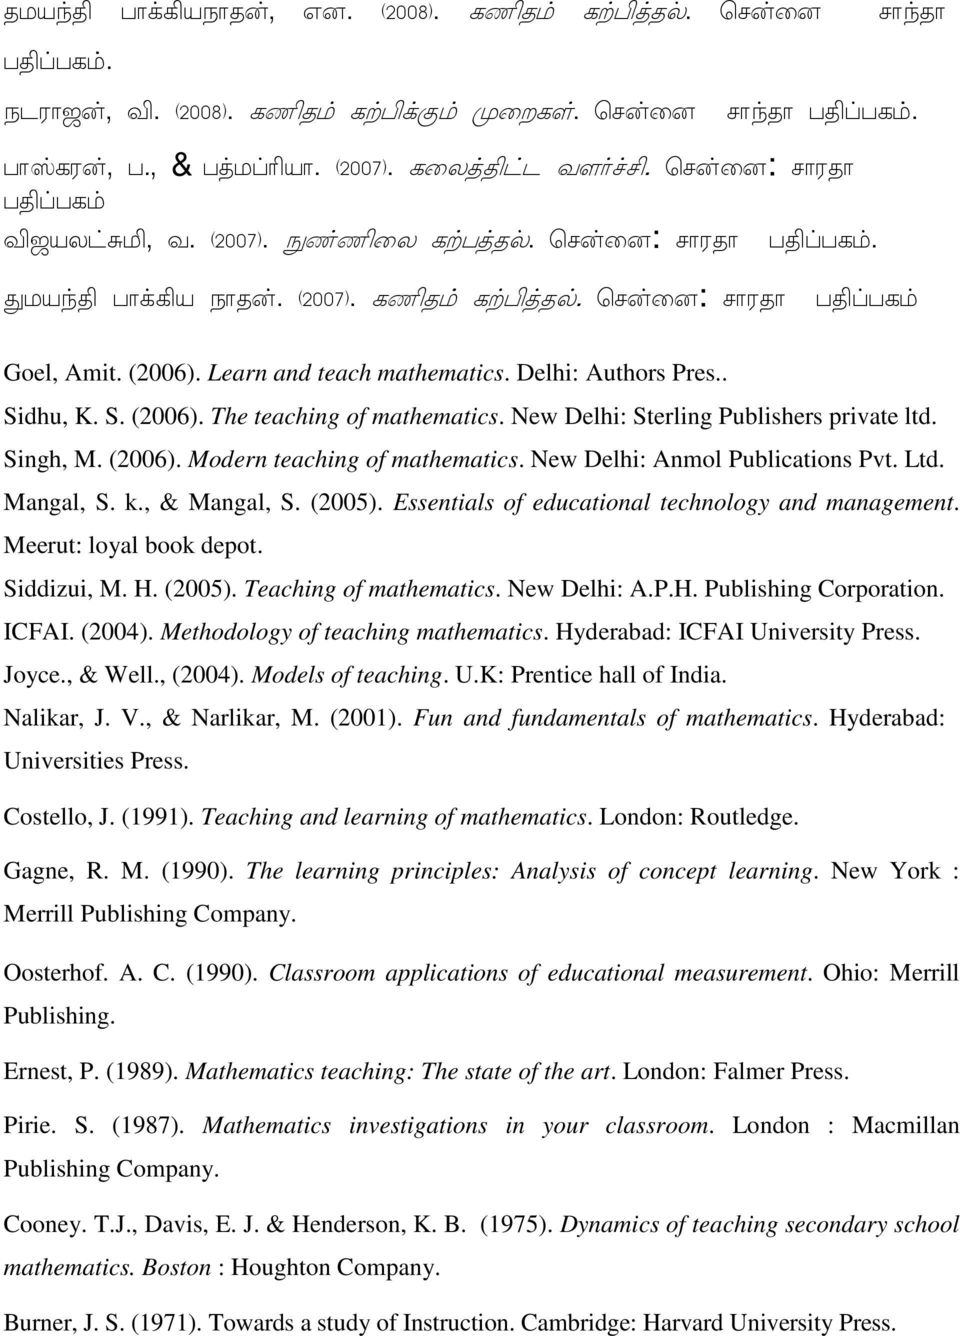 Meerut: loyal book depot. Siddizui, M. H. (2005). Teaching of mathematics. New Delhi: A.P.H. Publishing Corporation. ICFAI. (2004). Methodology of teaching mathematics.